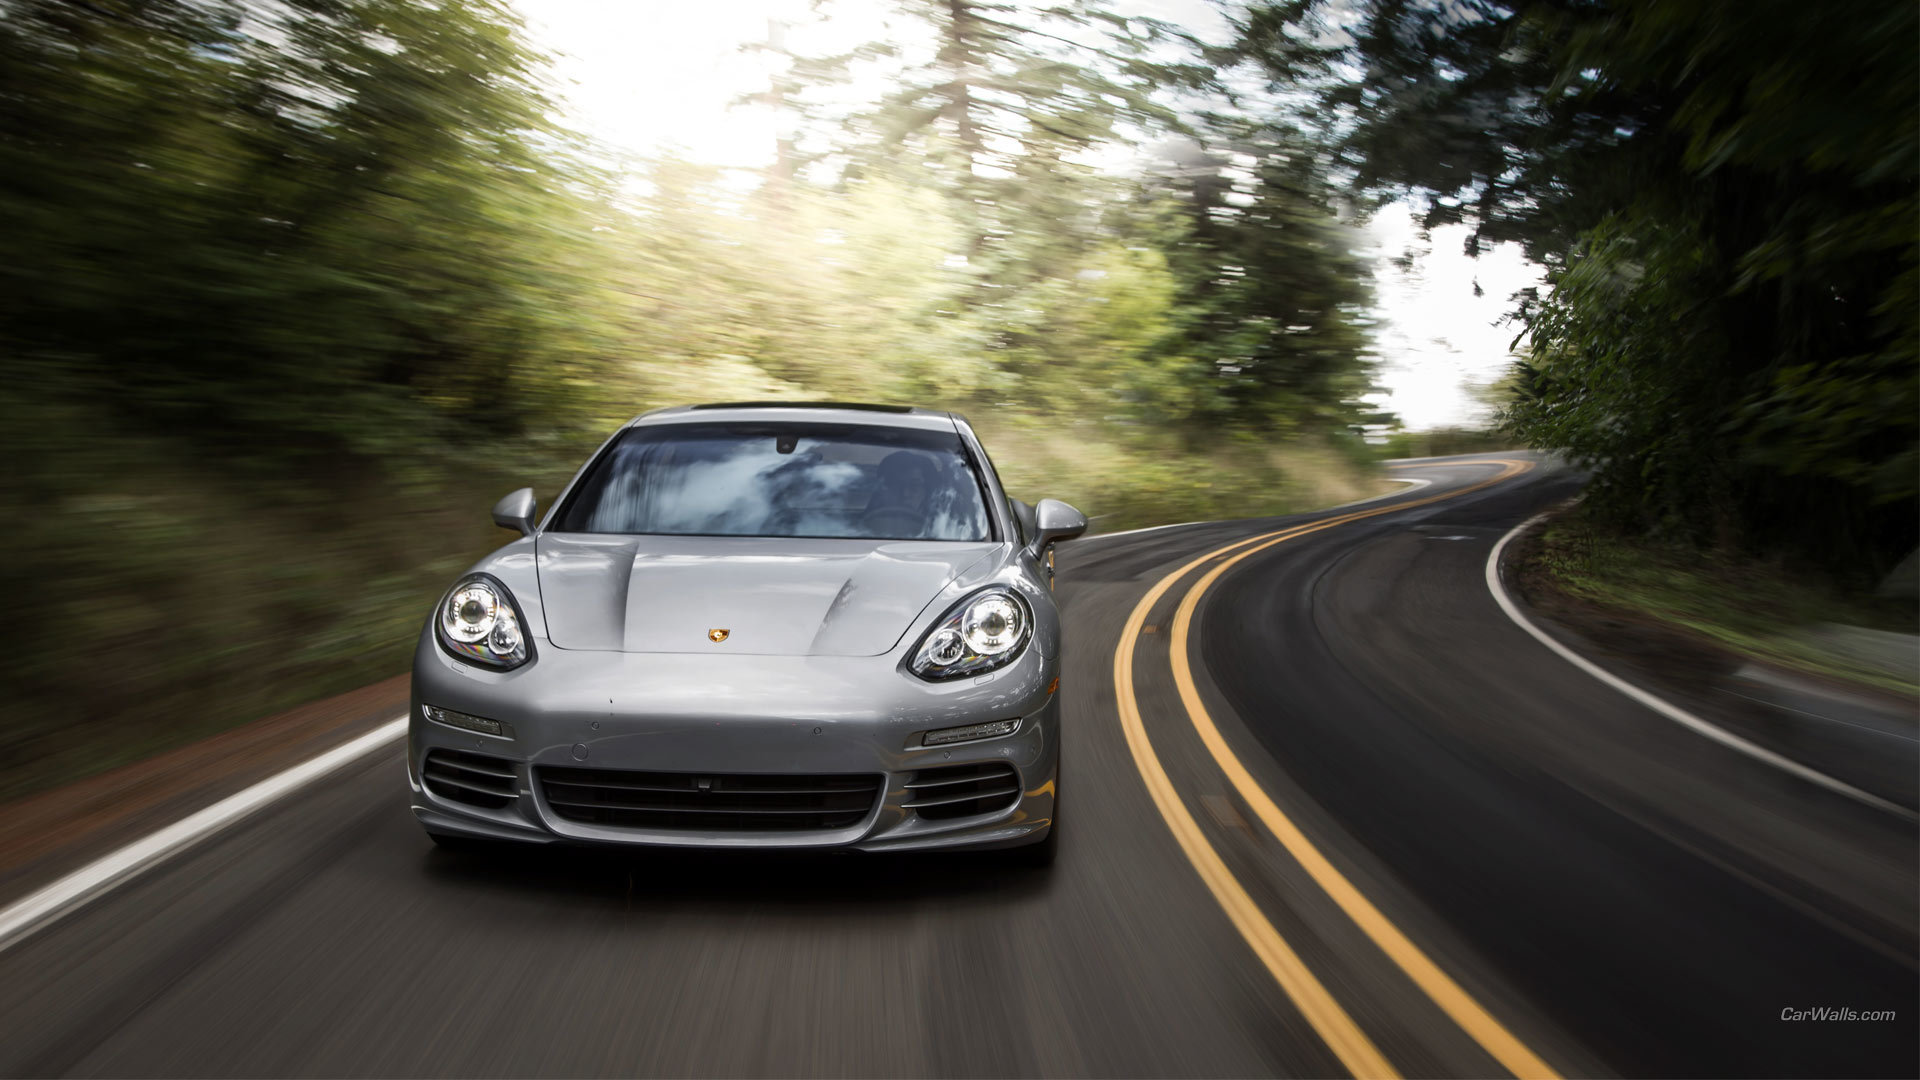 Free download Porsche Panamera background ID:27851 full hd for computer